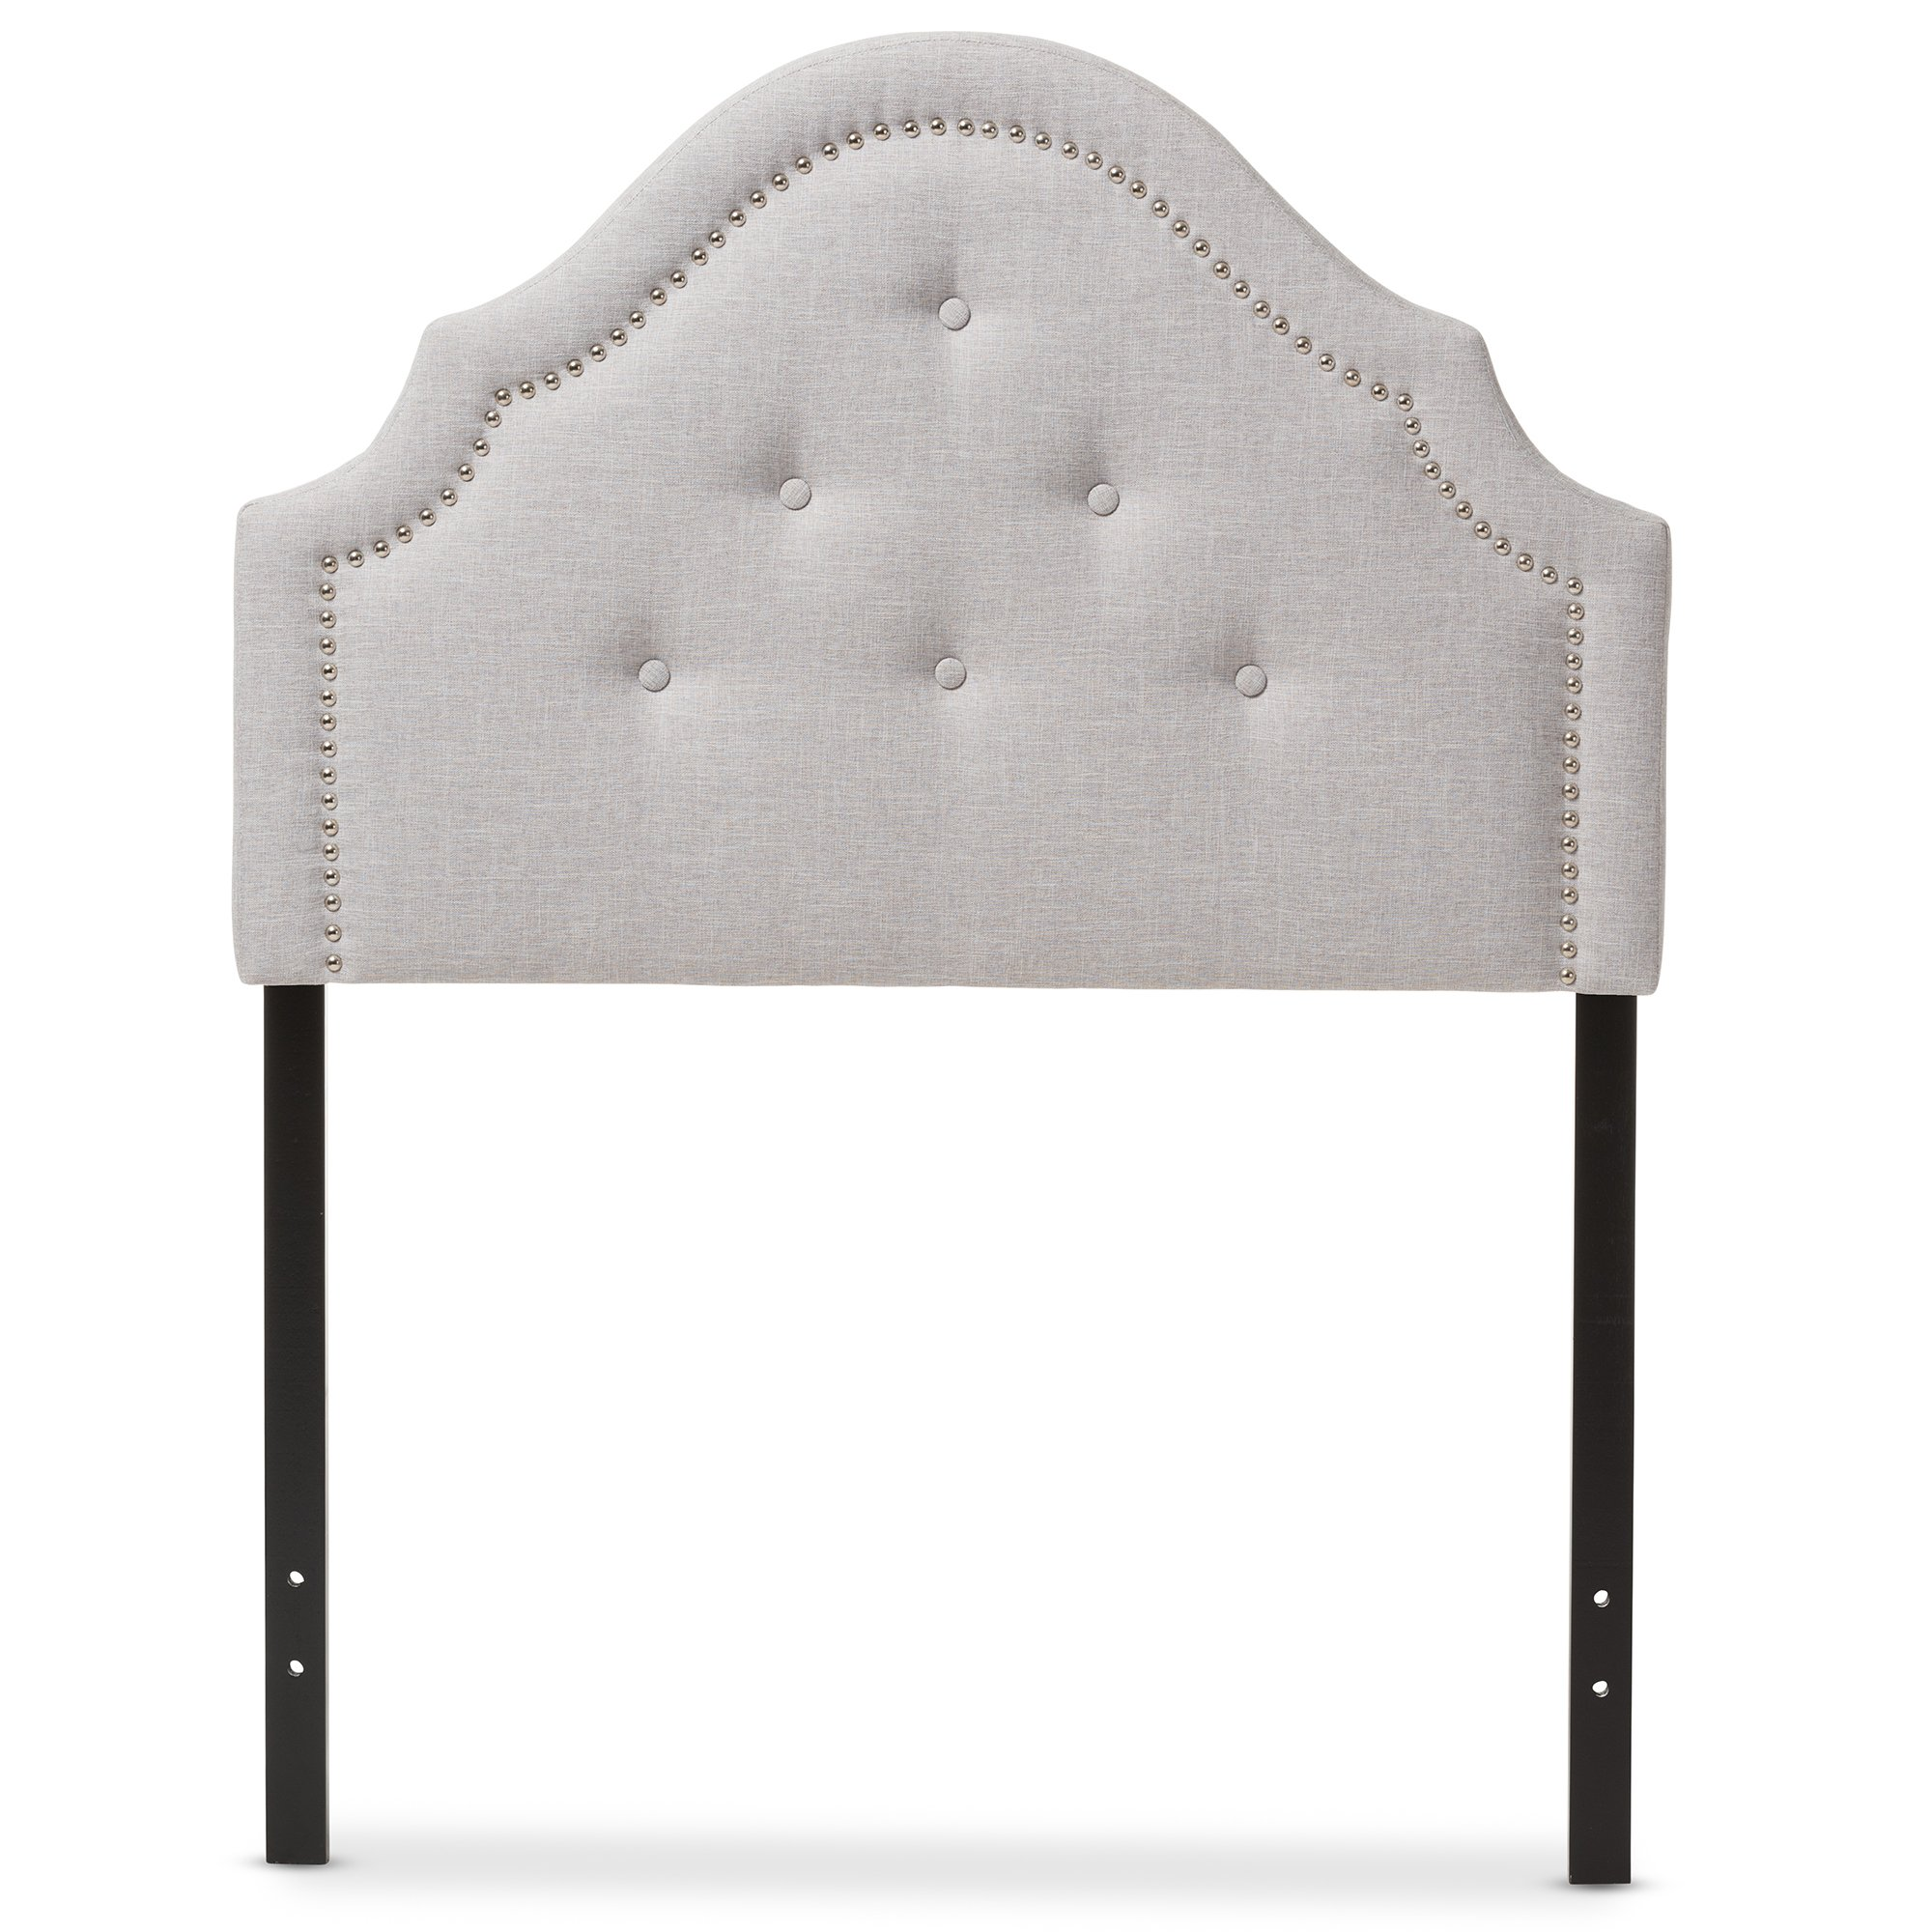 Baxton Studio Cosette Modern and Contemporary Greyish Beige Fabric Upholstered Headboard, Twin